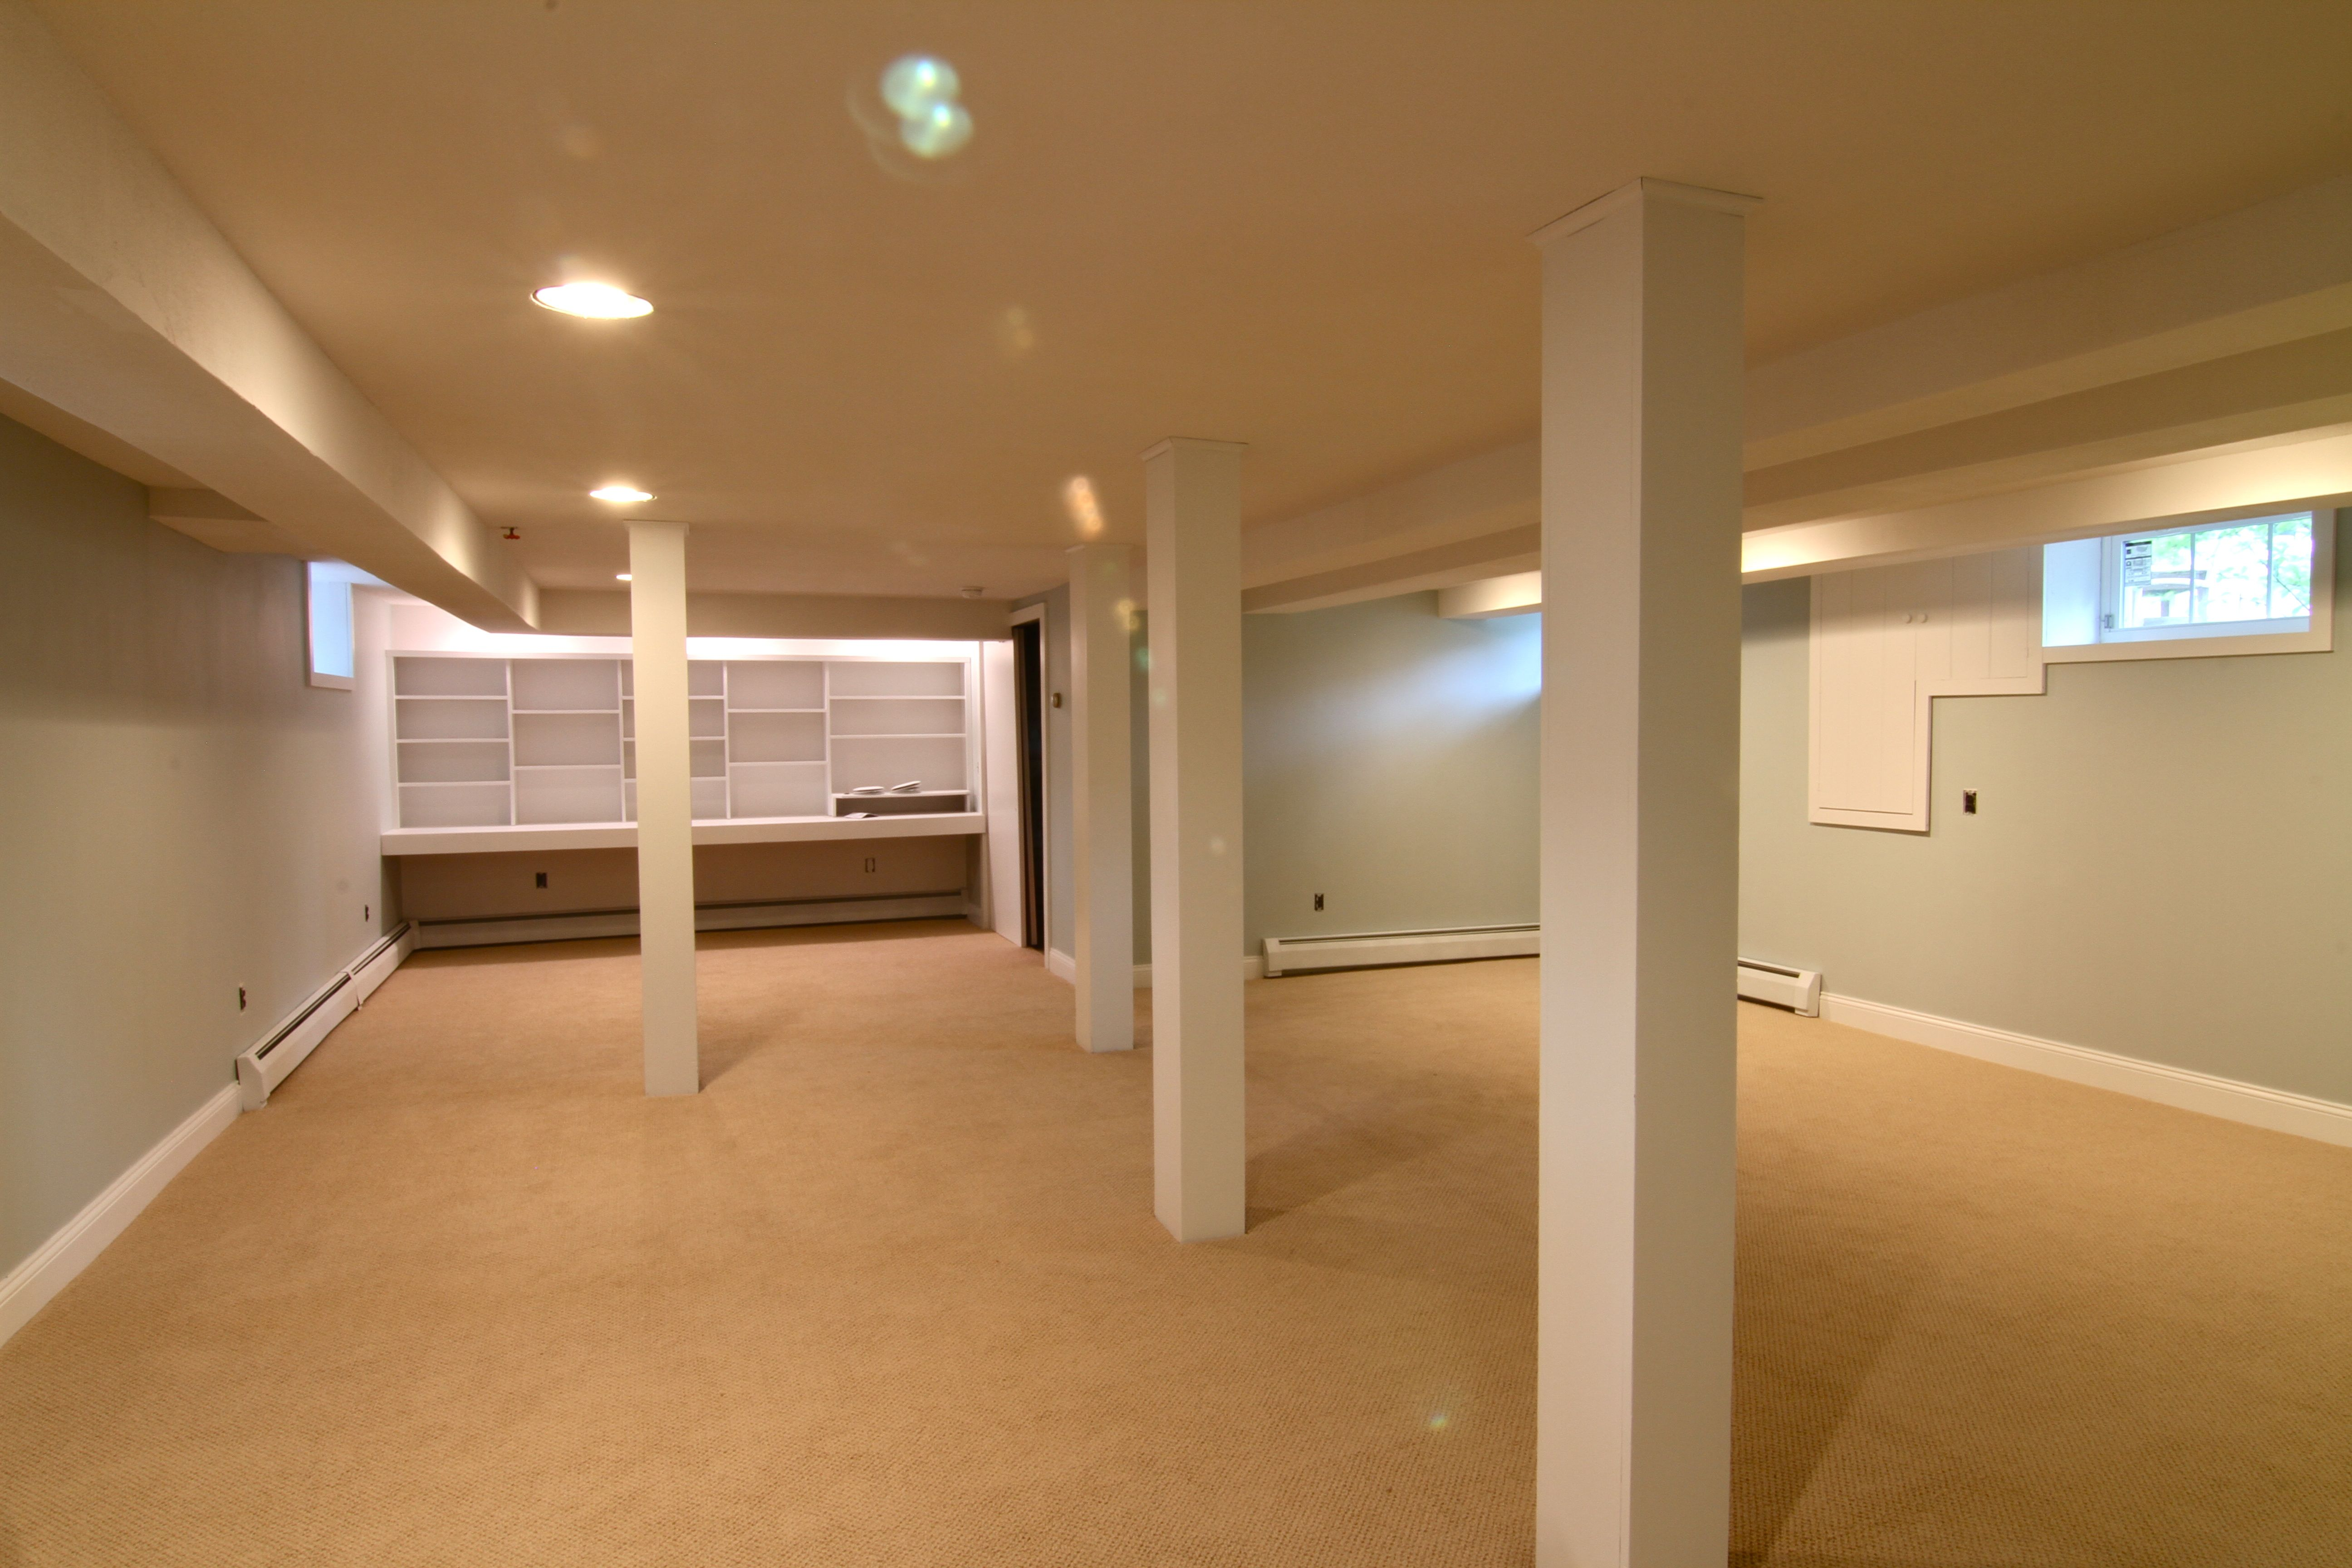 Basement AFTER: new paint, new carpet, new baseboards make for a bright, fresh, inviting any-purpose space.